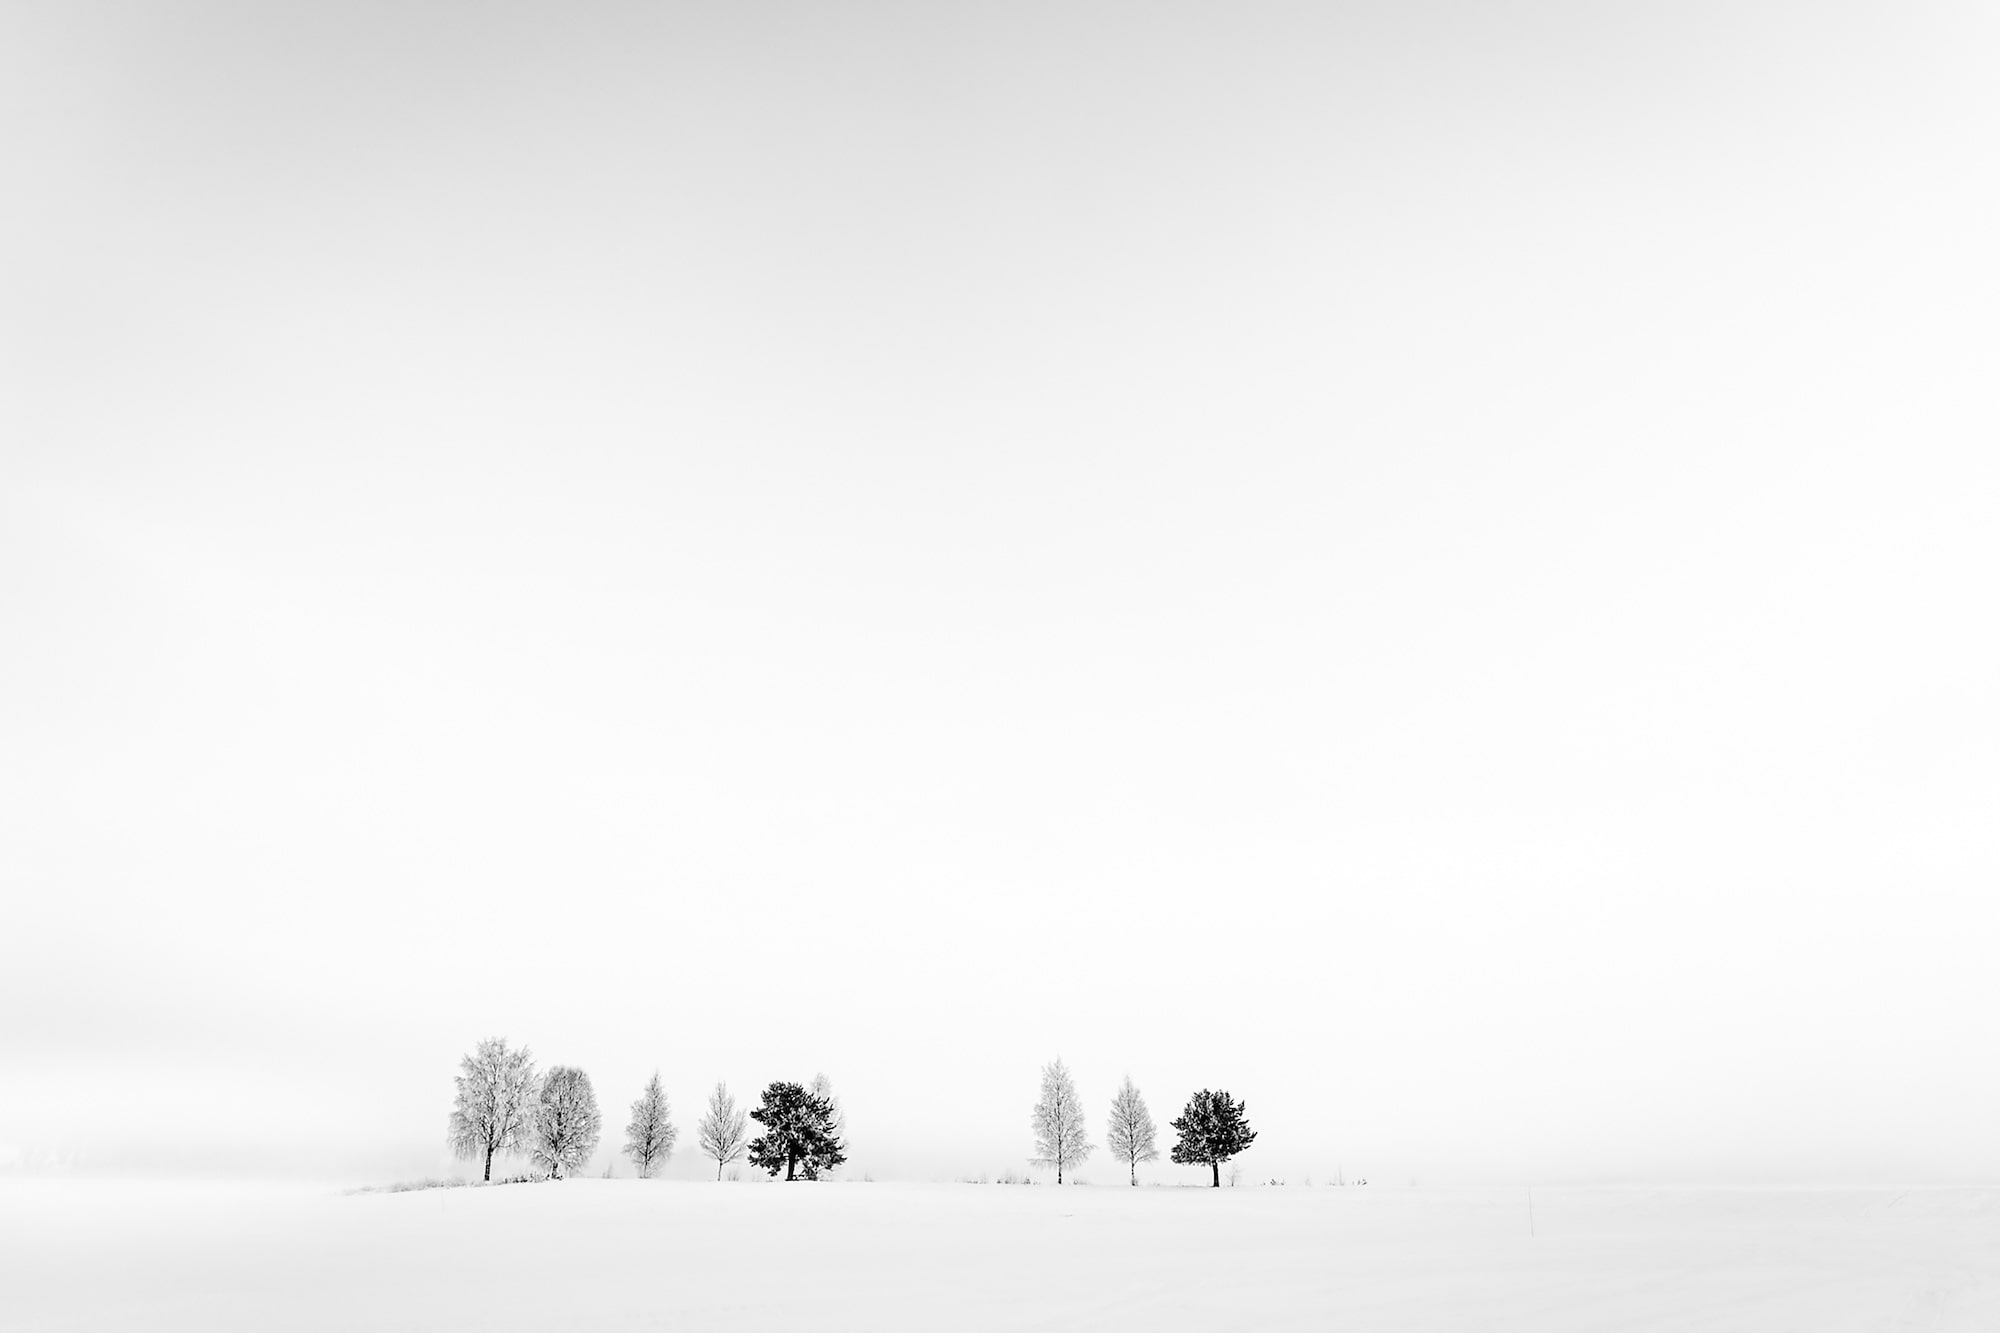 michael schaake sony alpha 7RM4 a row of trees standing on the horizon of a snowy landscape